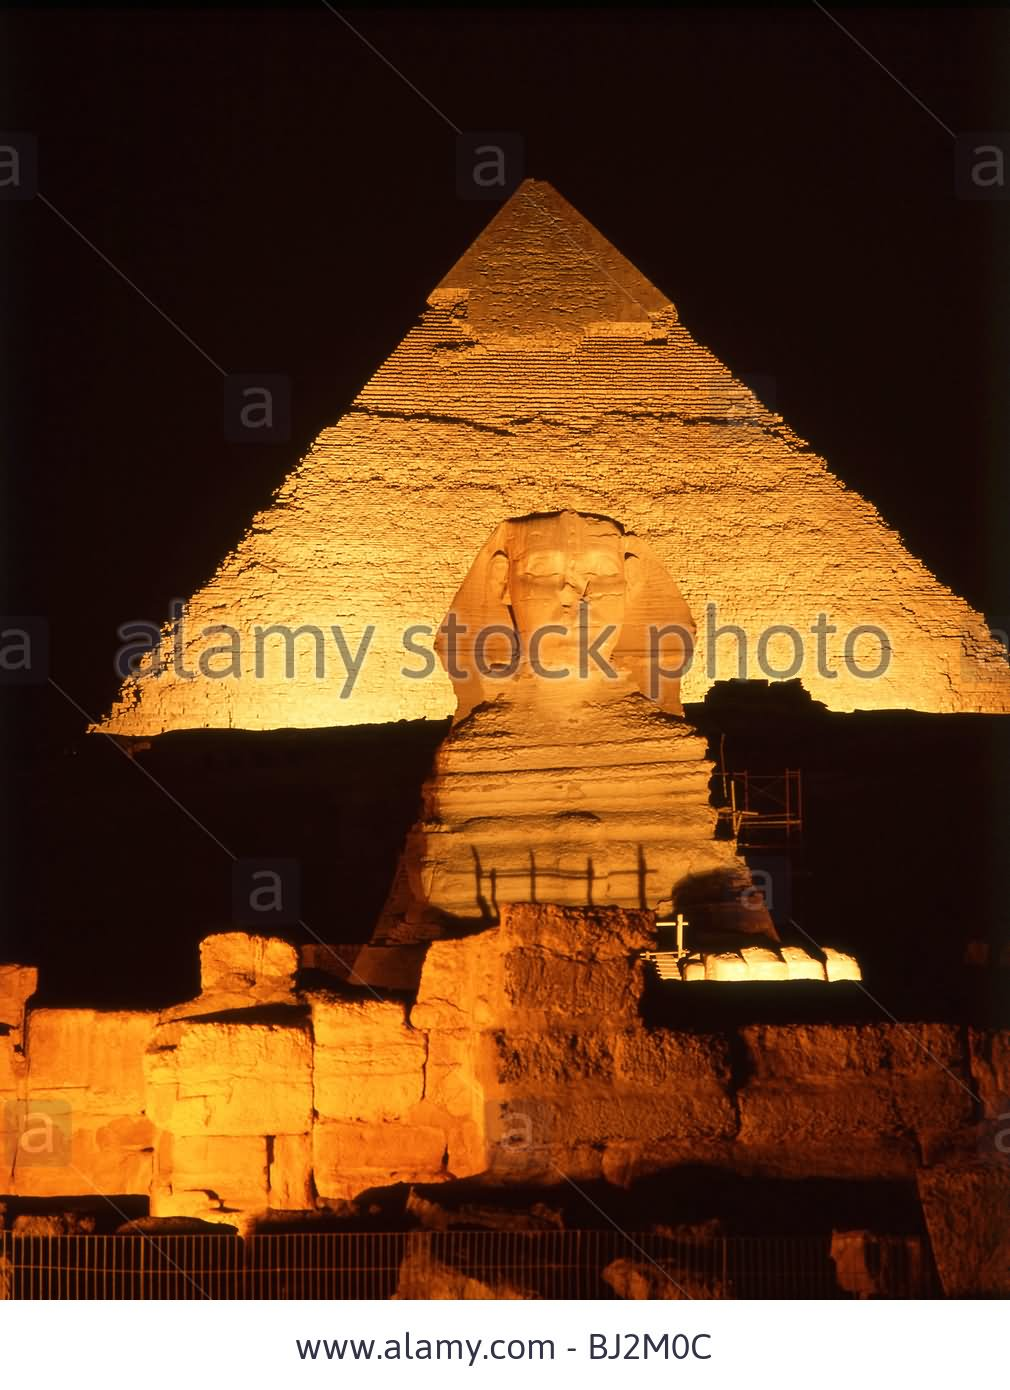 The Great Sphinx Of Giza And Pyramid At Night